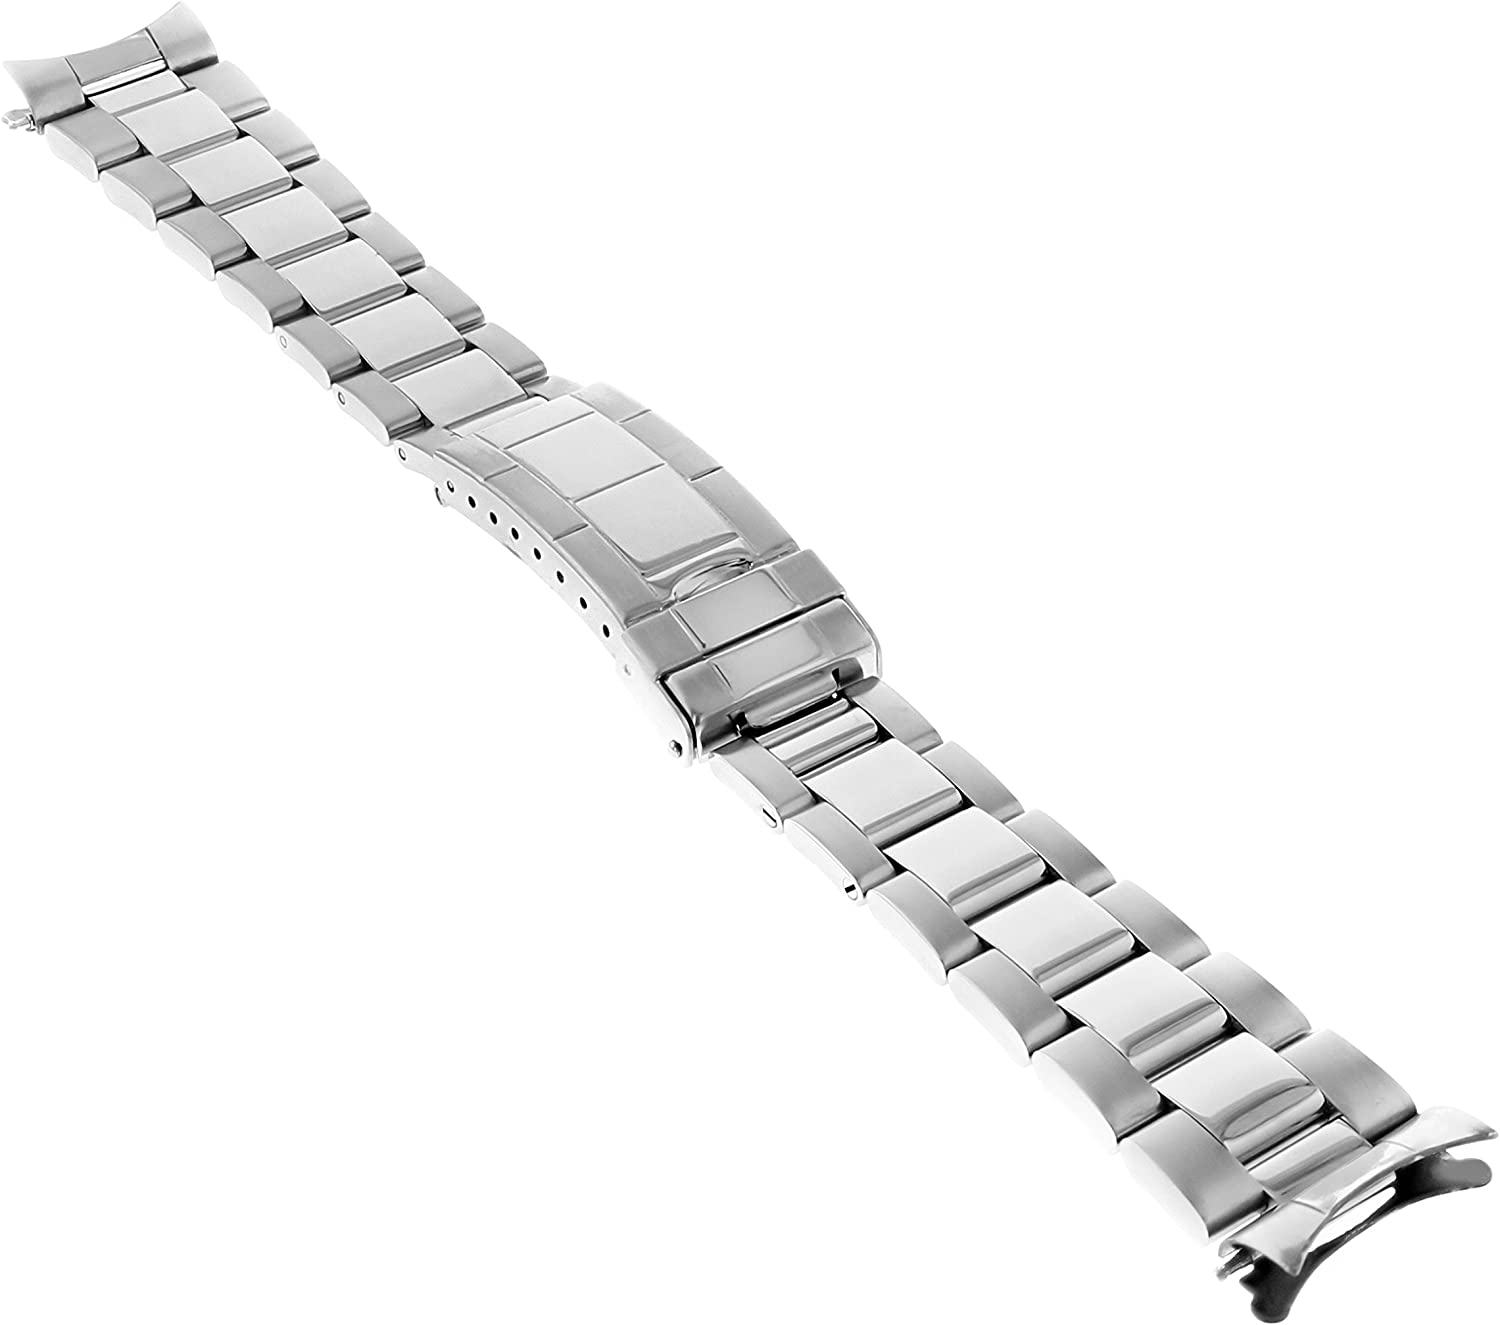 Oyster Watch Band Animer and price revision Compatible with San Francisco Mall 19mm Submariner Fliplock Rolex